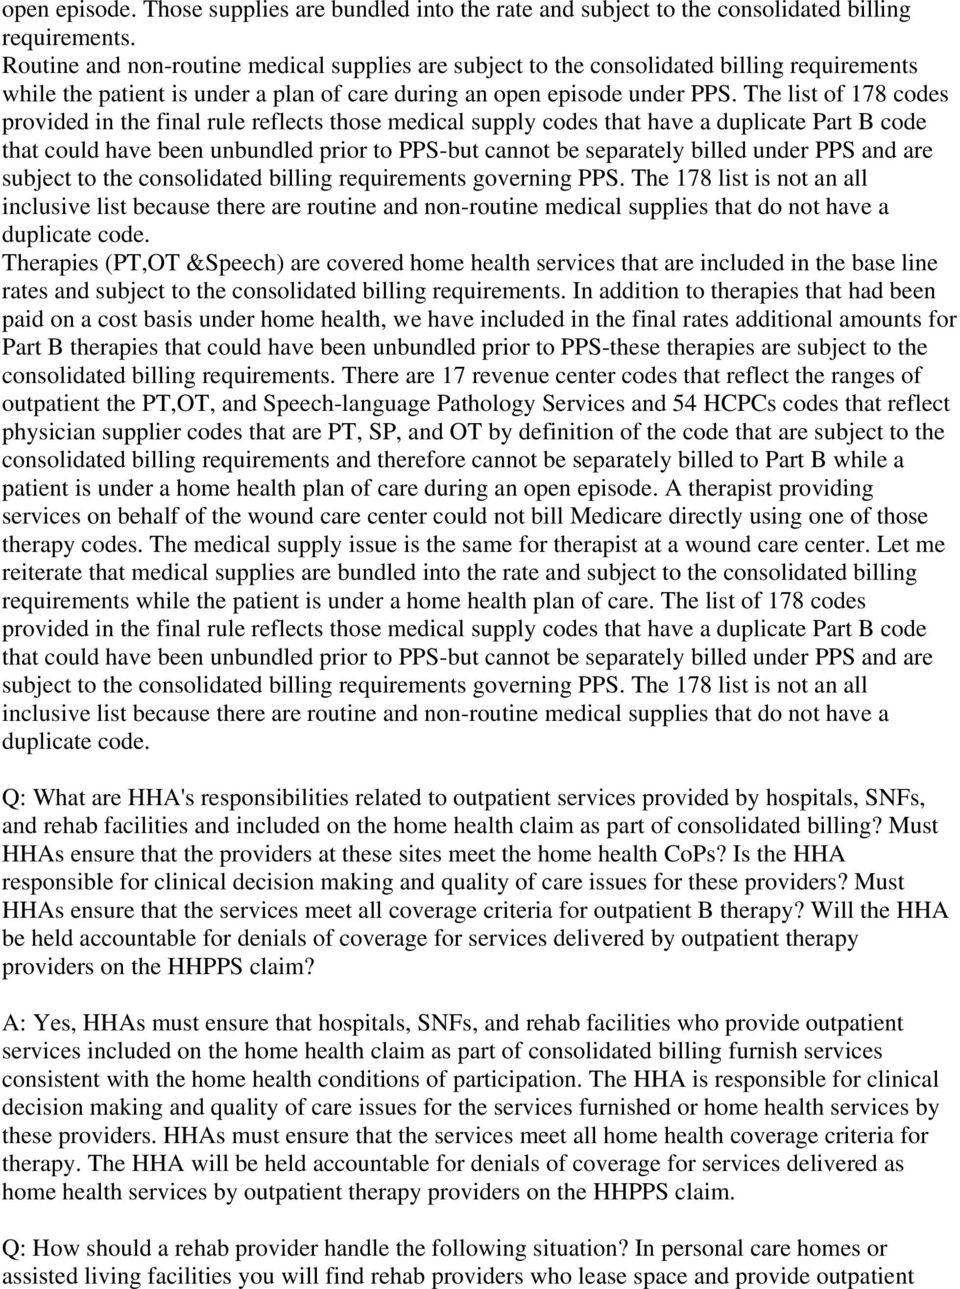 Home Health Pps Frequently Asked Questions Pdf